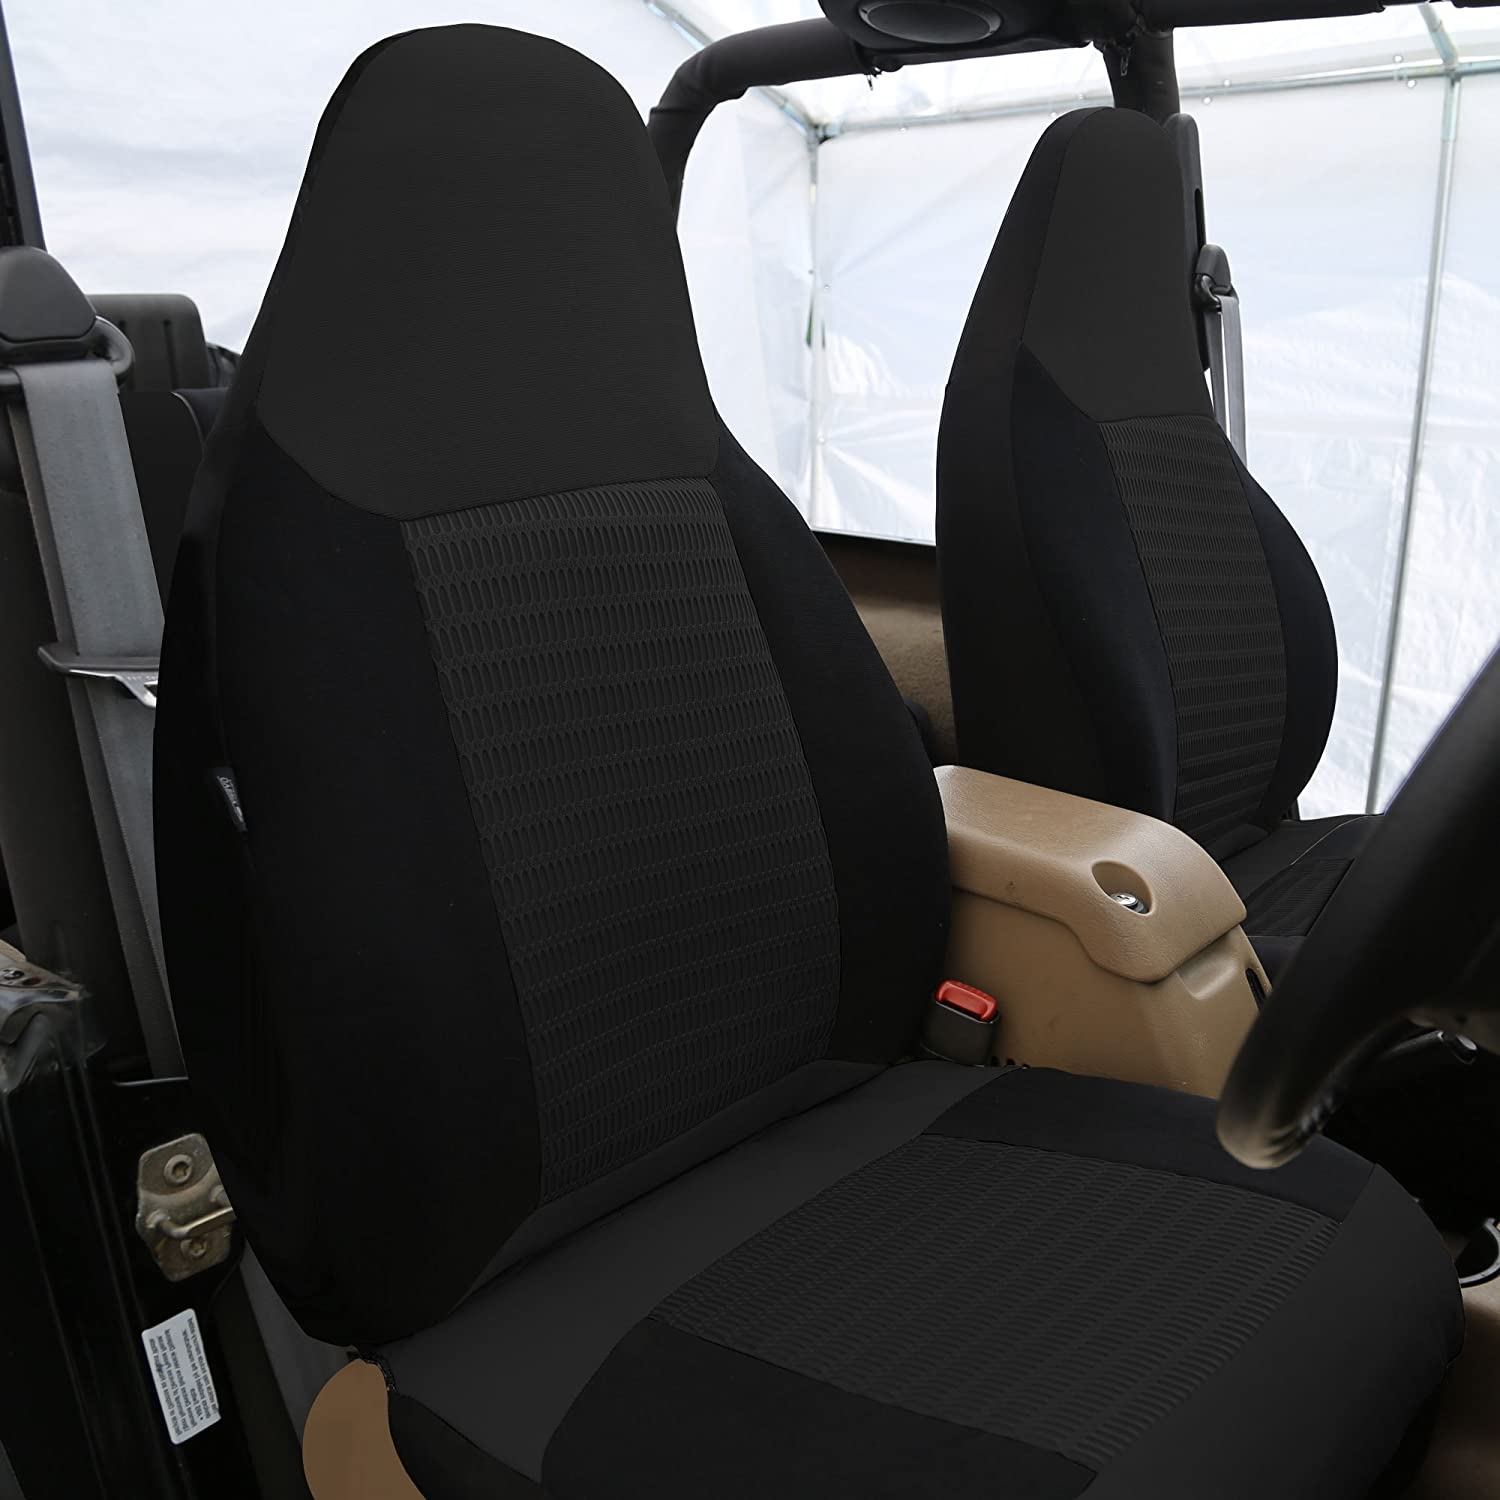 FH Group FB107BLACK102 Black Premium Fabric Bucket Car Seat Cover Airbag Compatible Set of 2